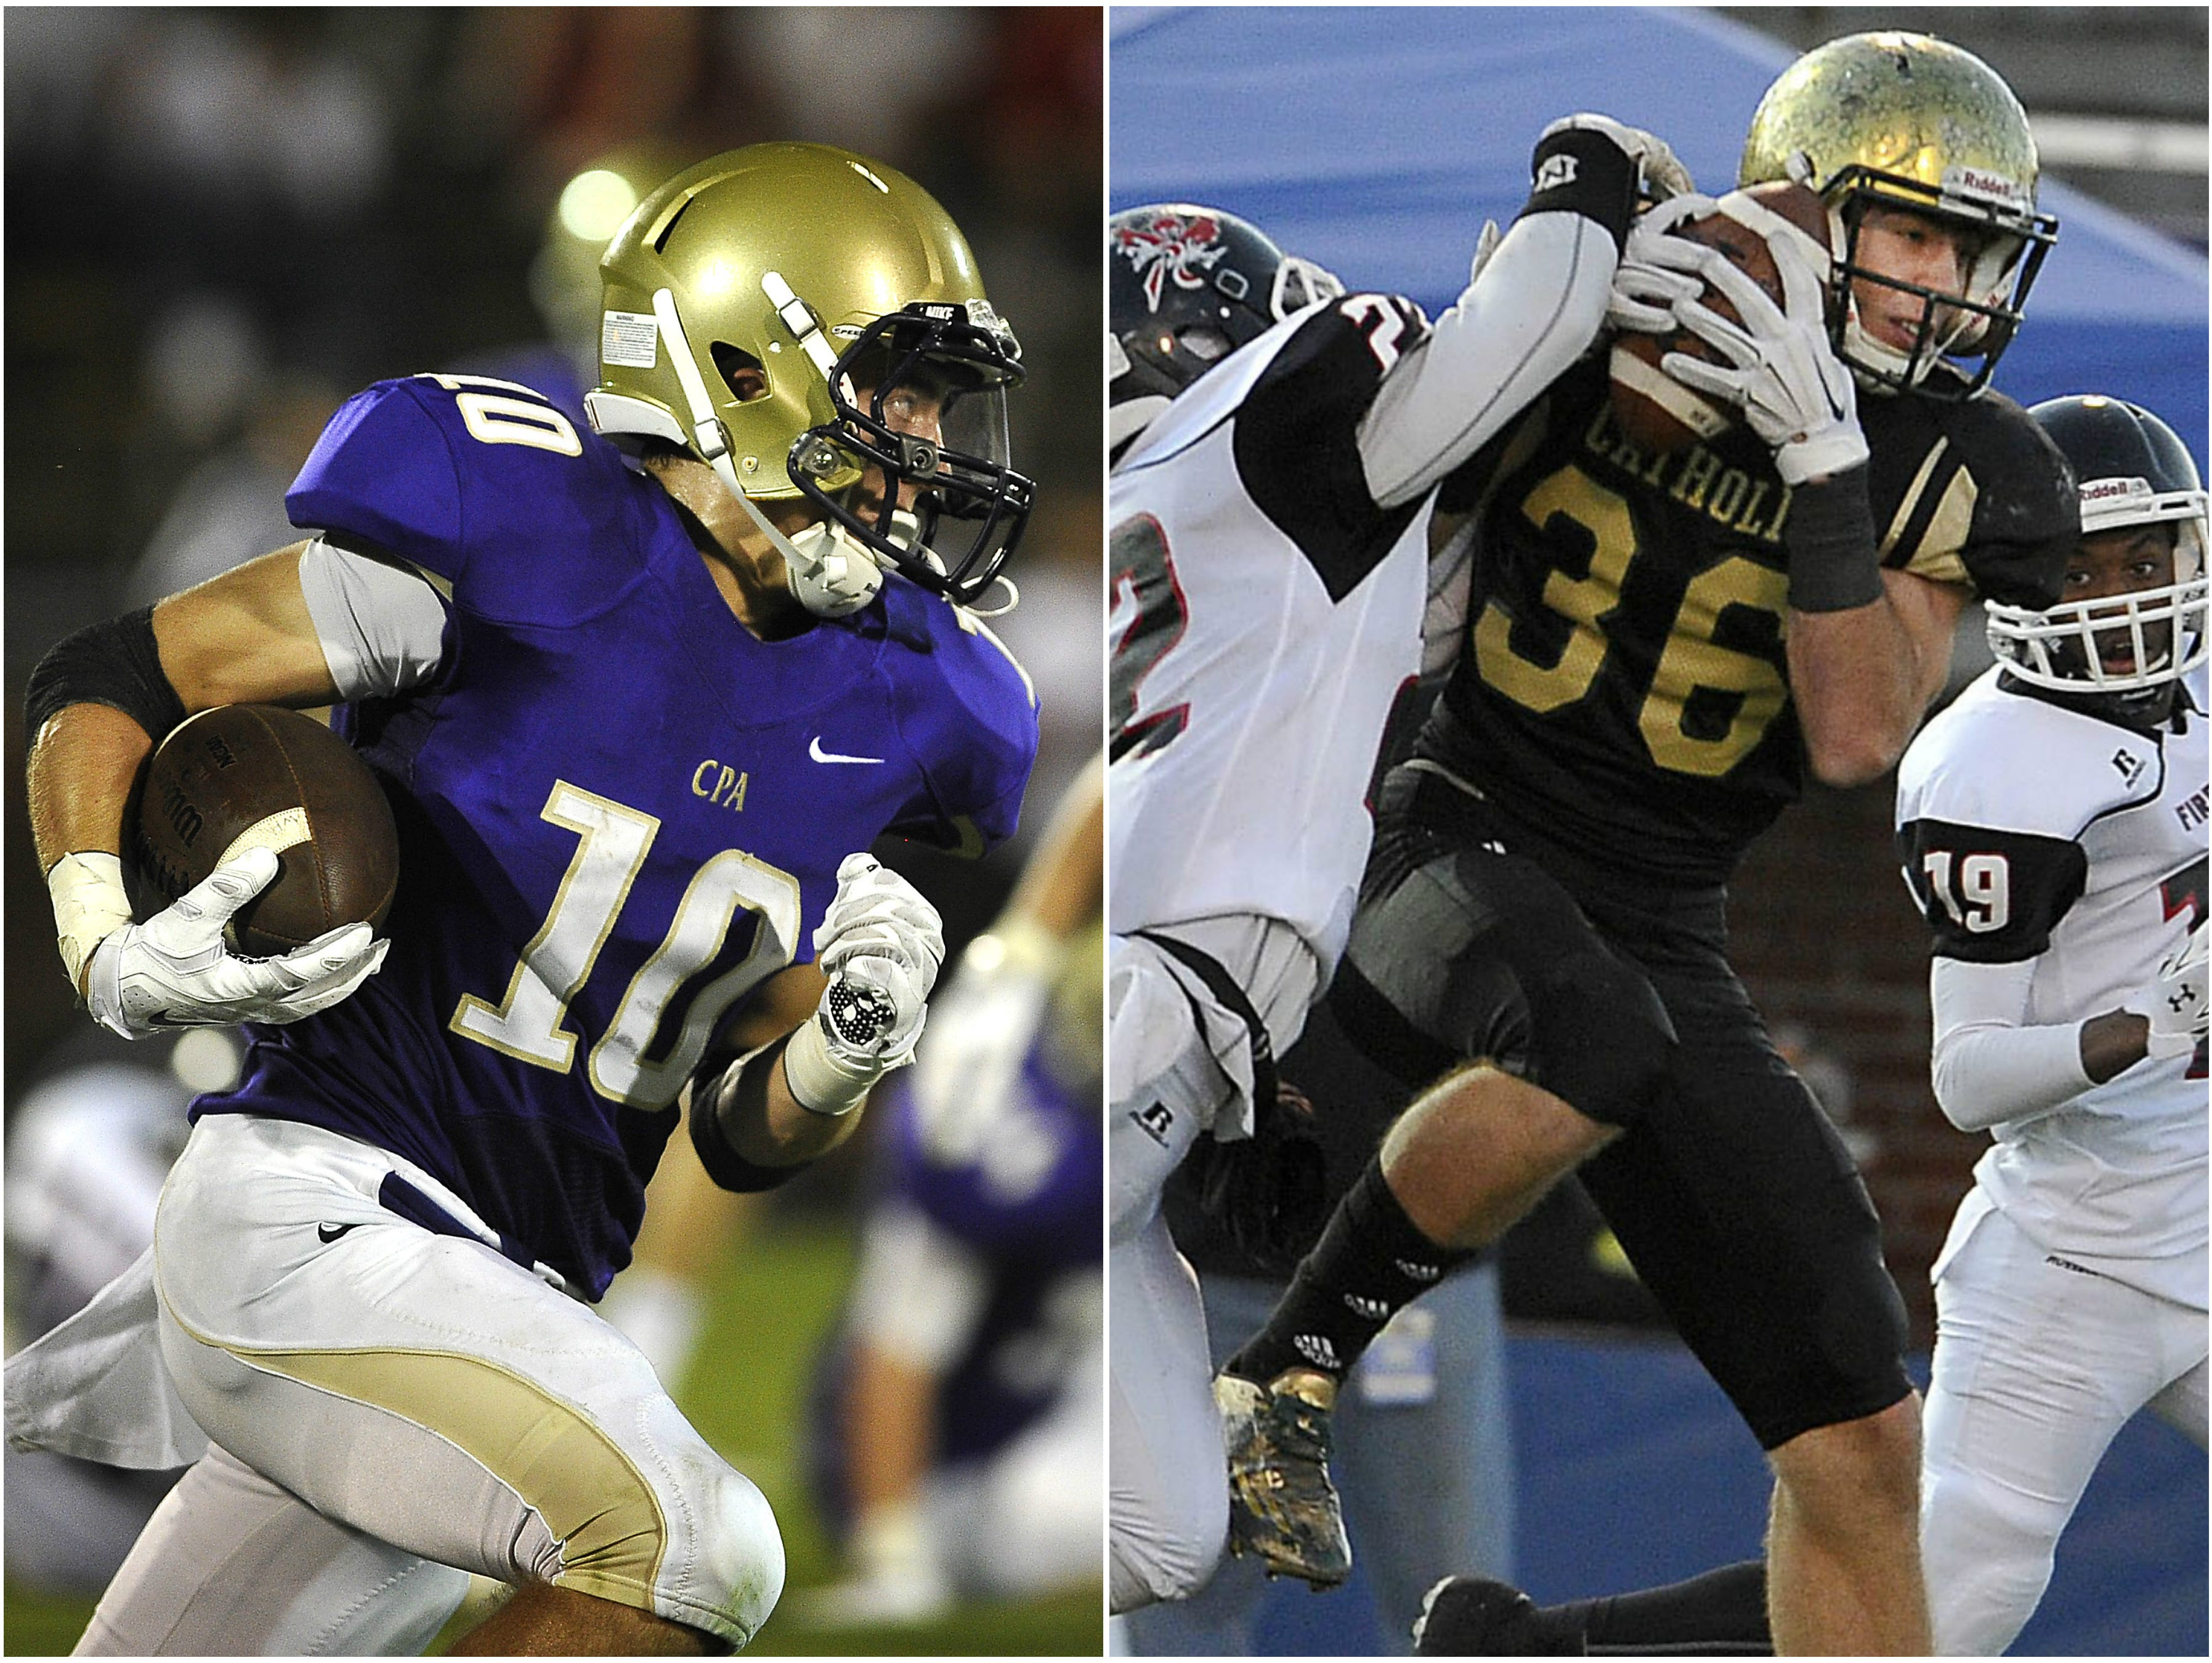 CPA wide receiver Andrew Howard (left) and Knoxville Catholic athlete Chase Kuerschen (right)